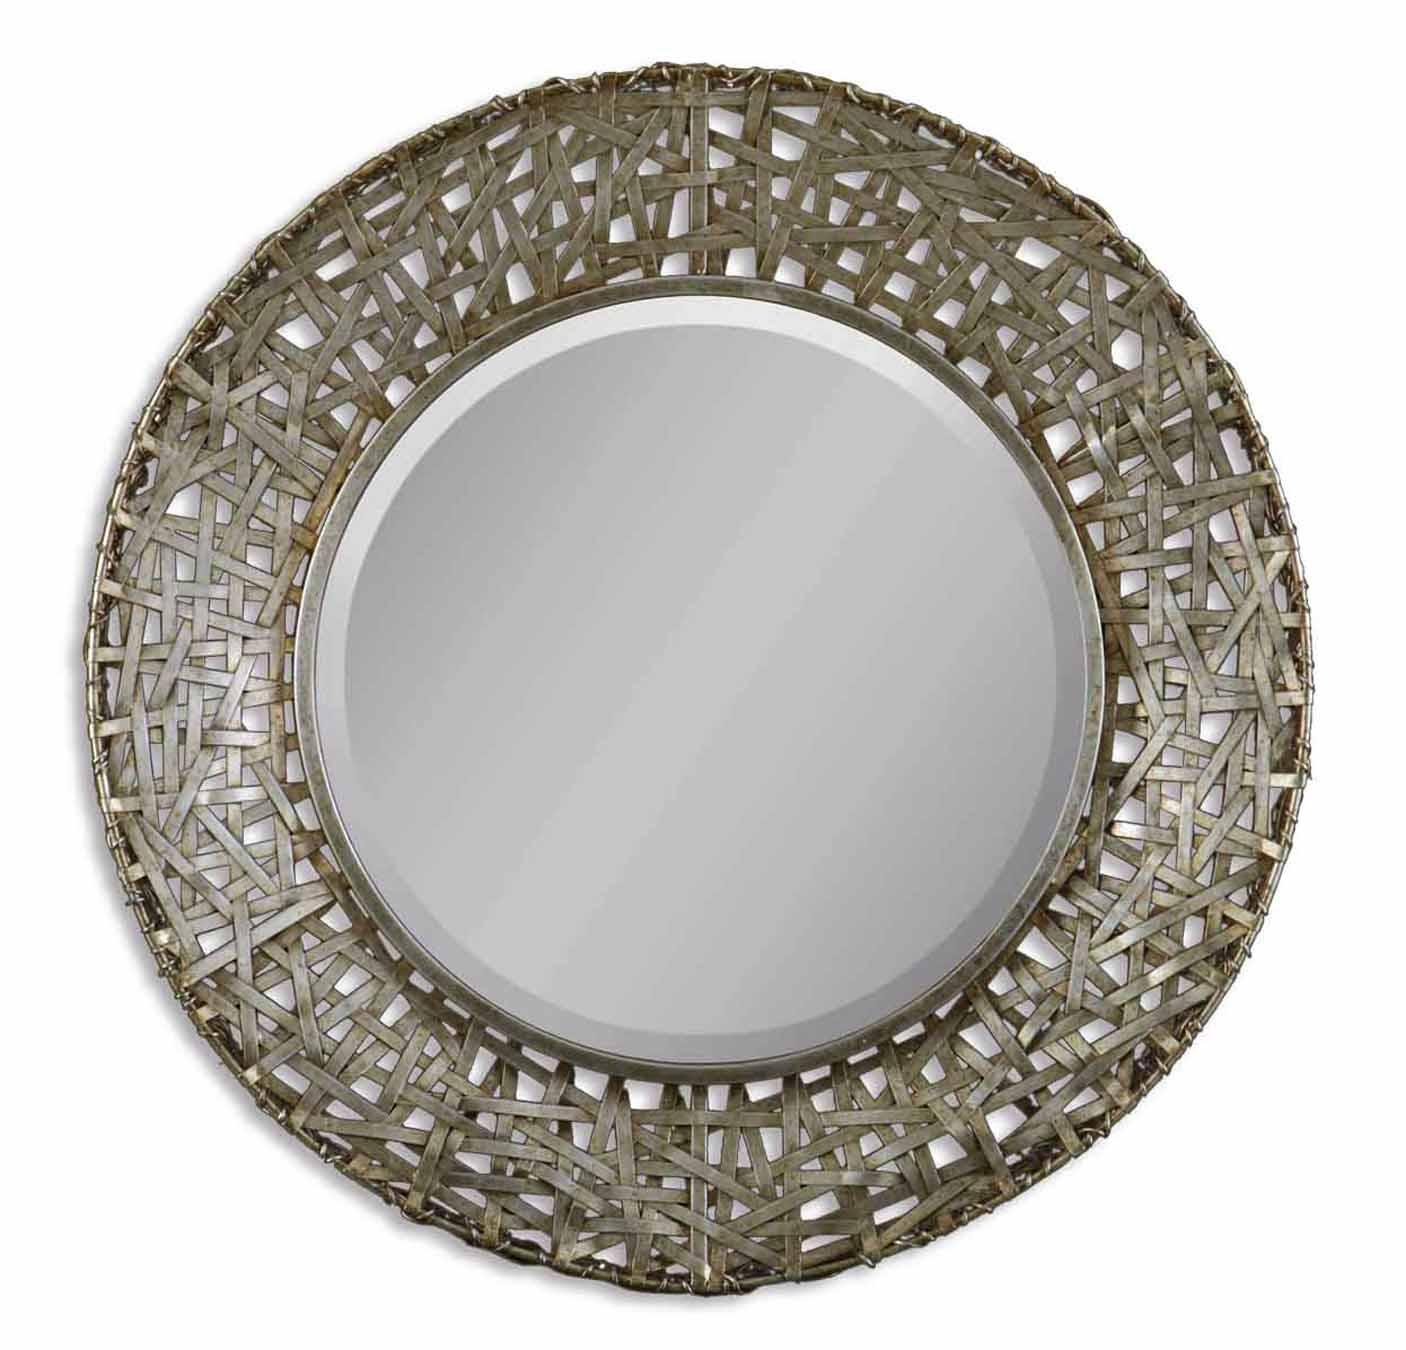 Uttermost Mirrors Alita Champagne - Item Number: 11603 B